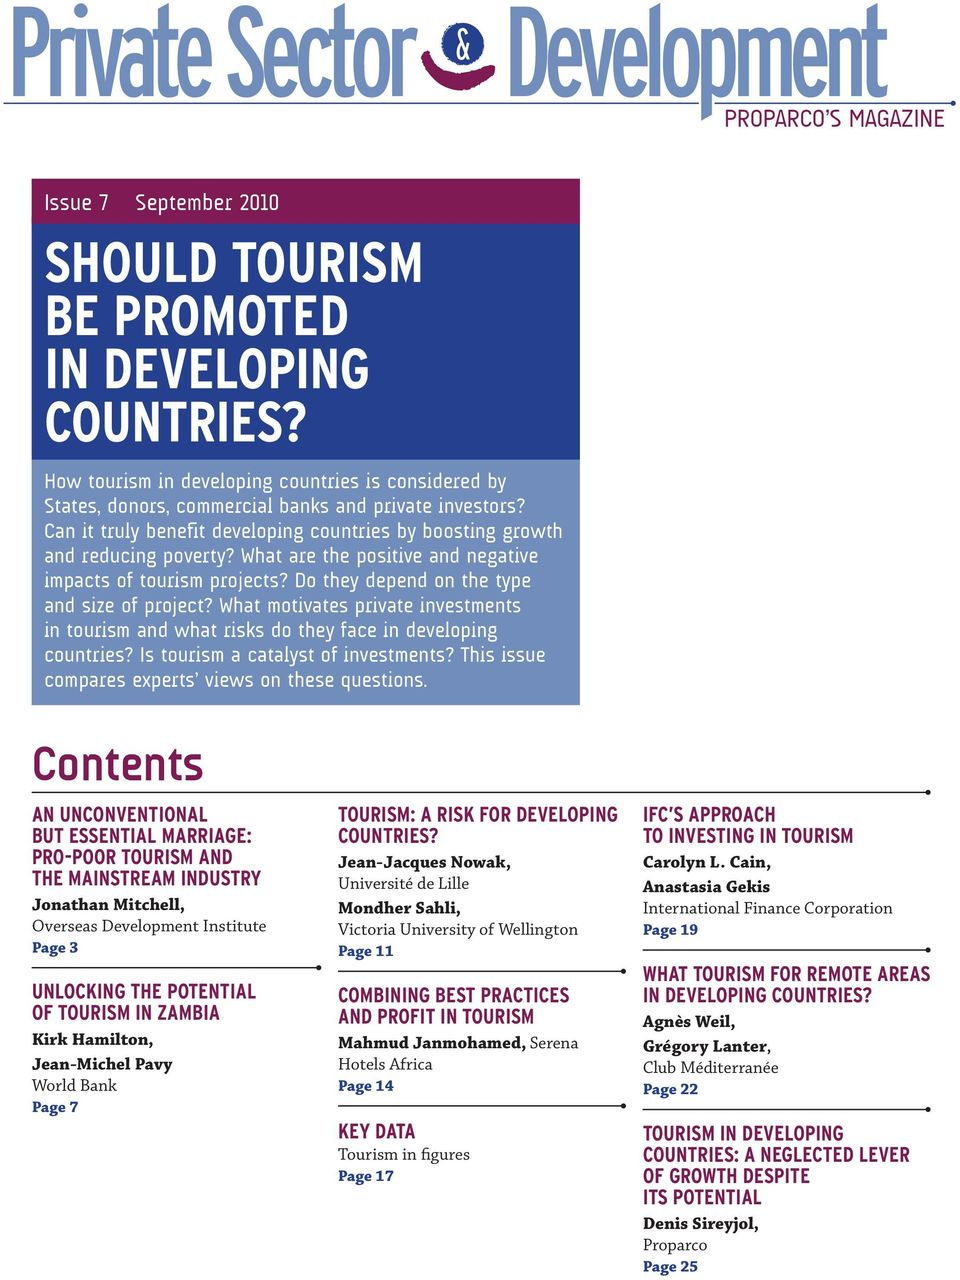 What are the positive and negative impacts of tourism projects? Do they depend on the type and size of project?